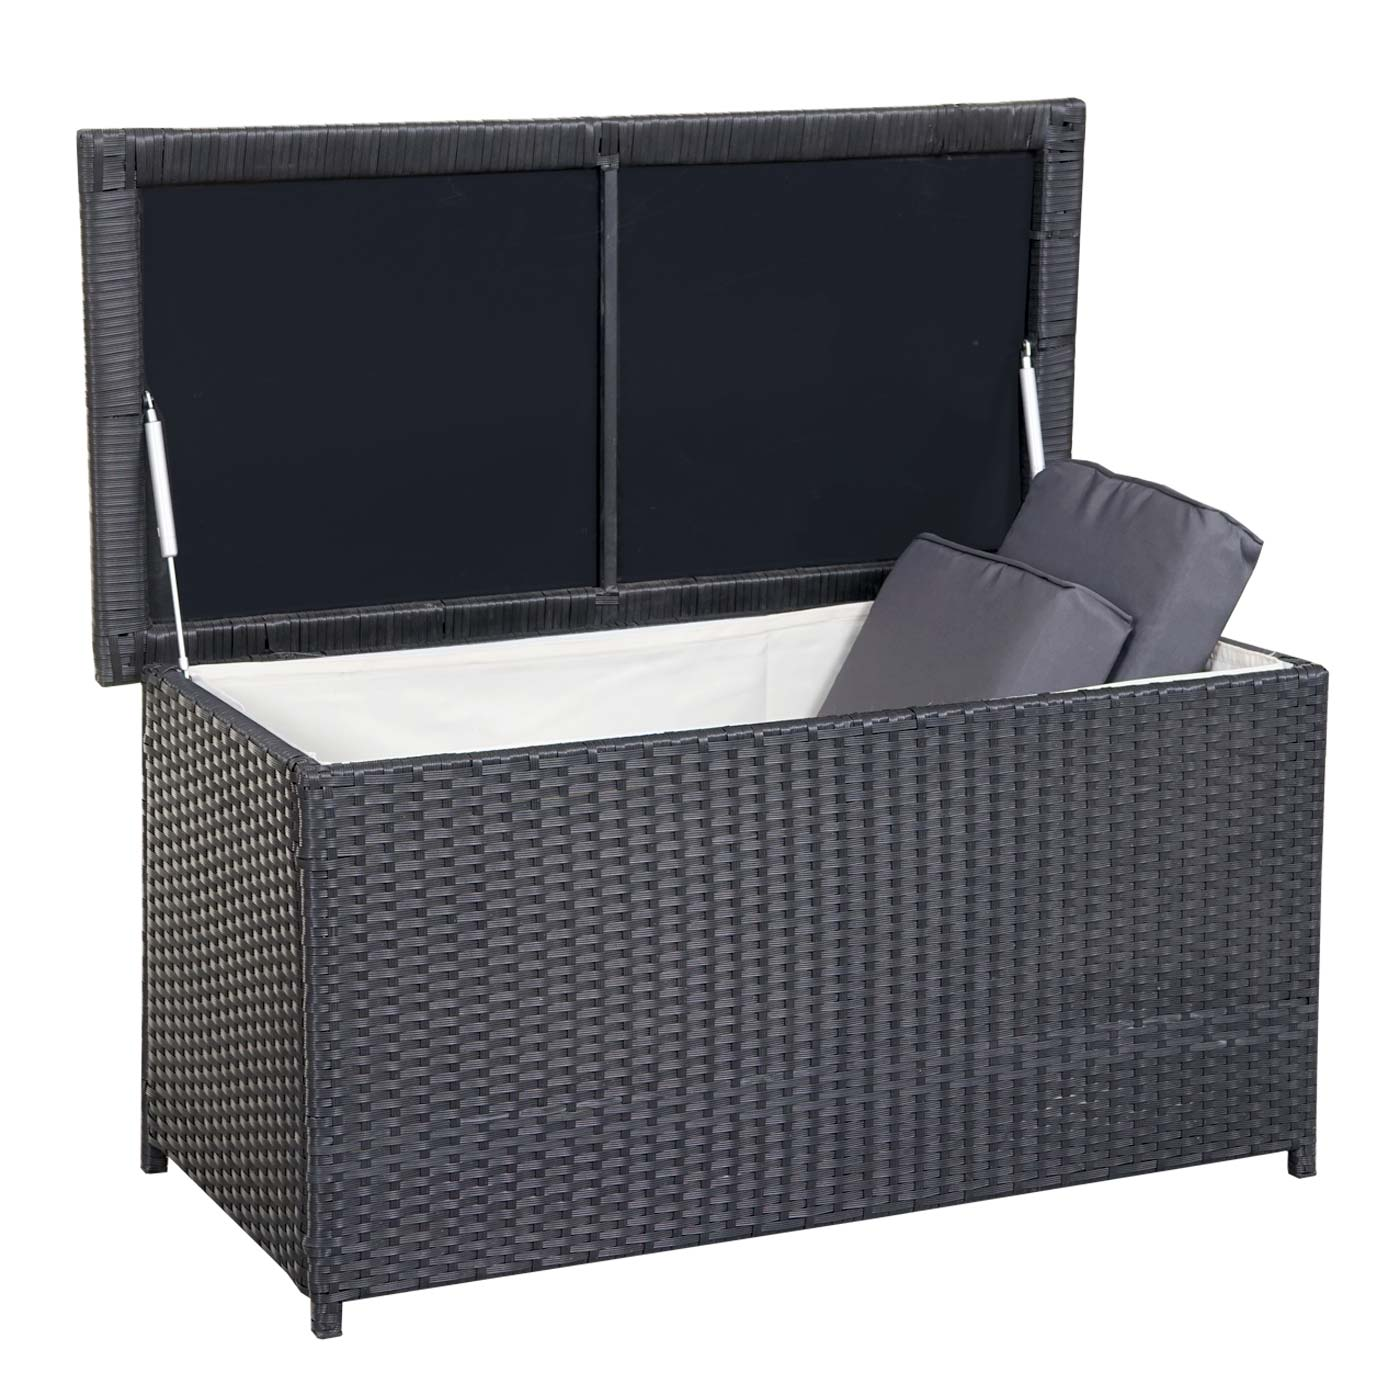 poly rattan kissenbox hwc d43 truhe auflagenbox gartentruhe 51x100x50cm 160l schwarz. Black Bedroom Furniture Sets. Home Design Ideas